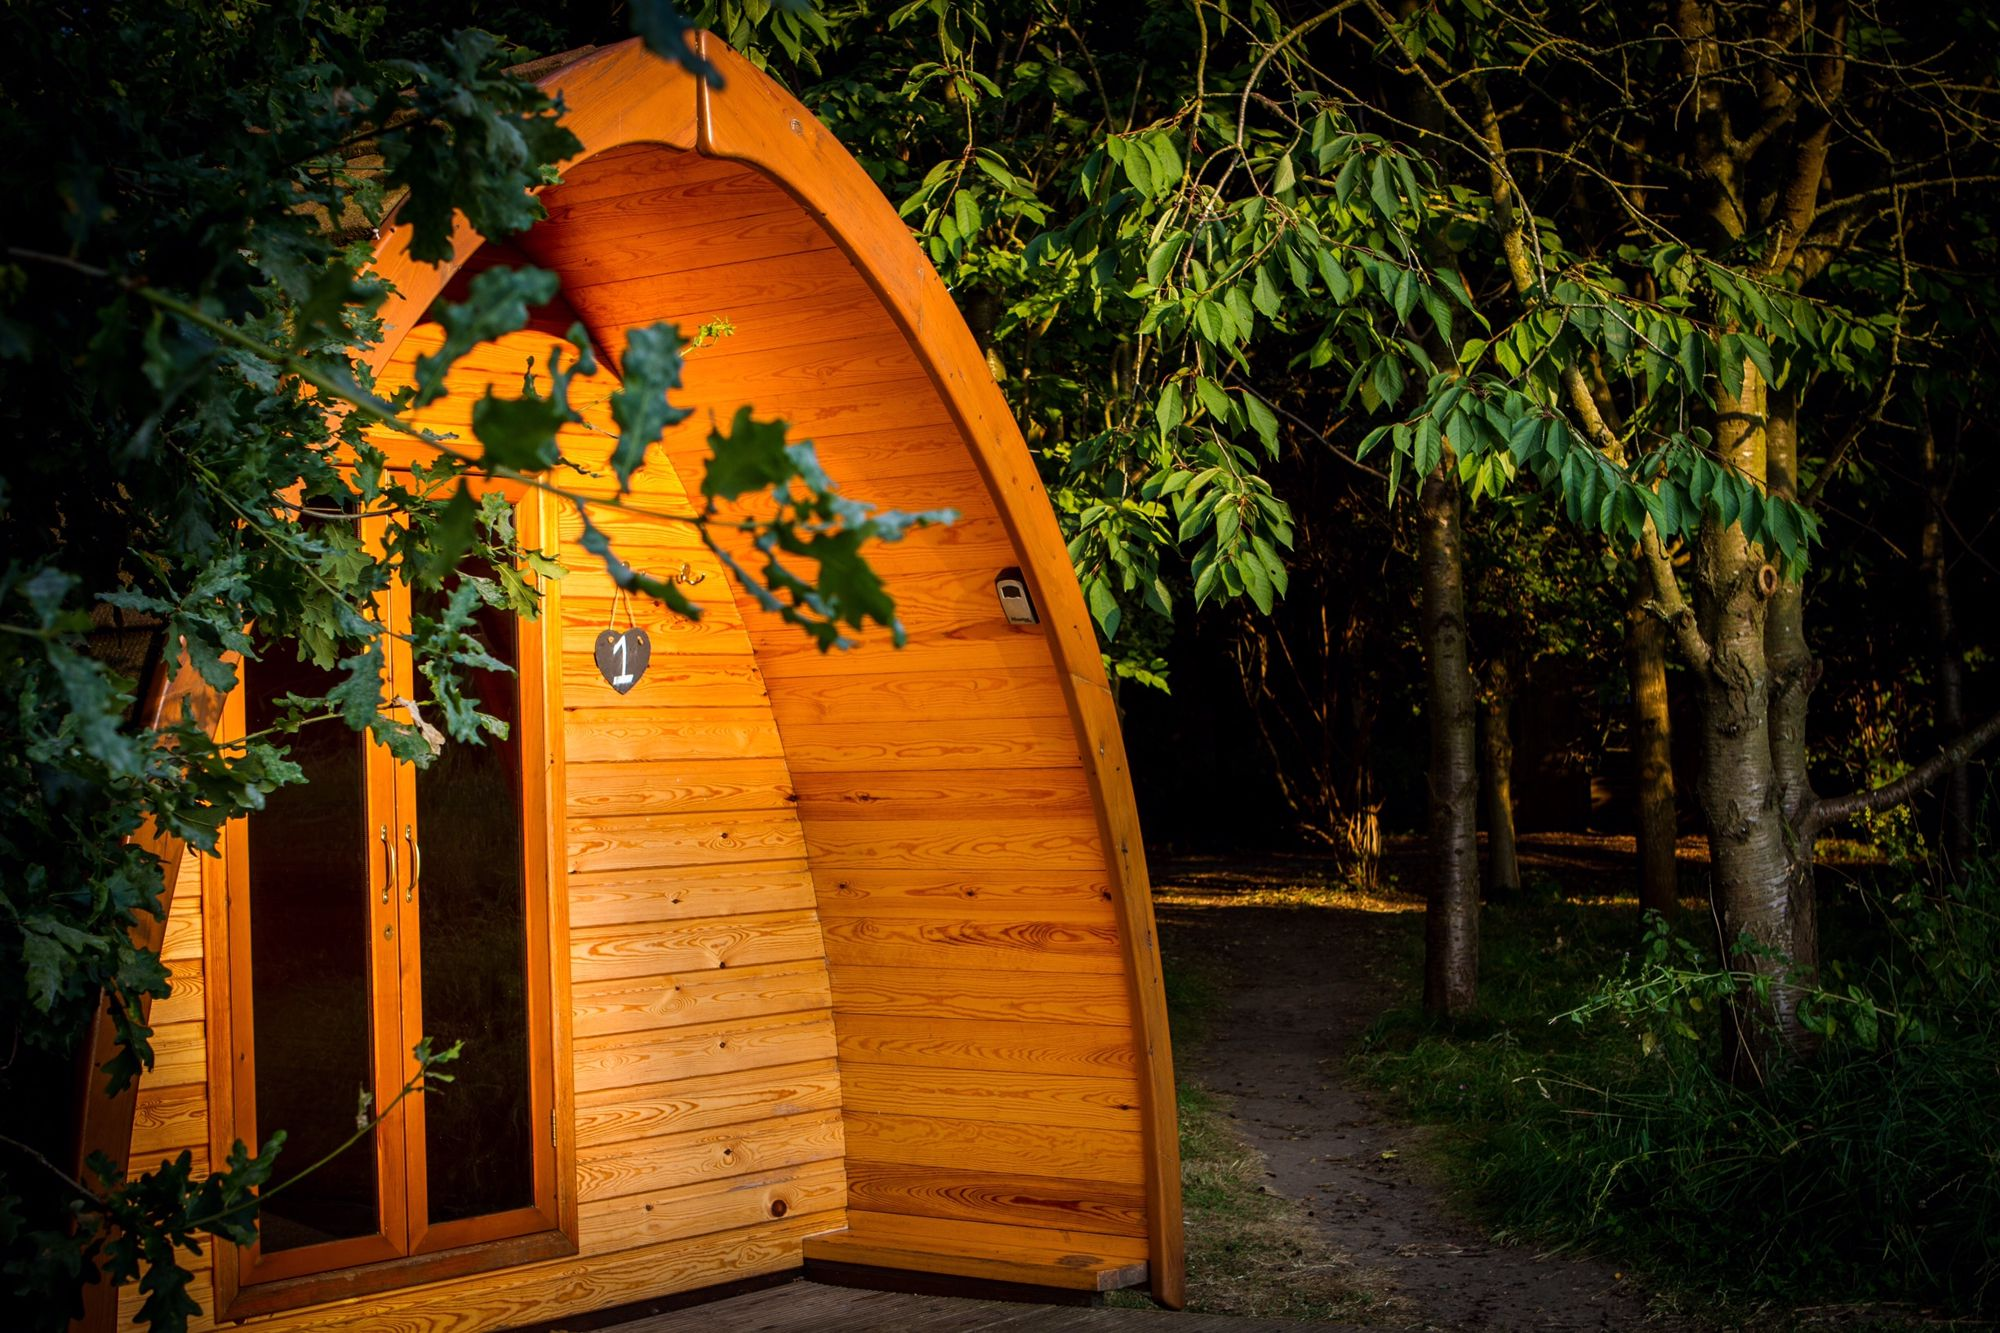 Off-the-grid camping in rural Lincolnshire set in secluded woodland with individual campfires.